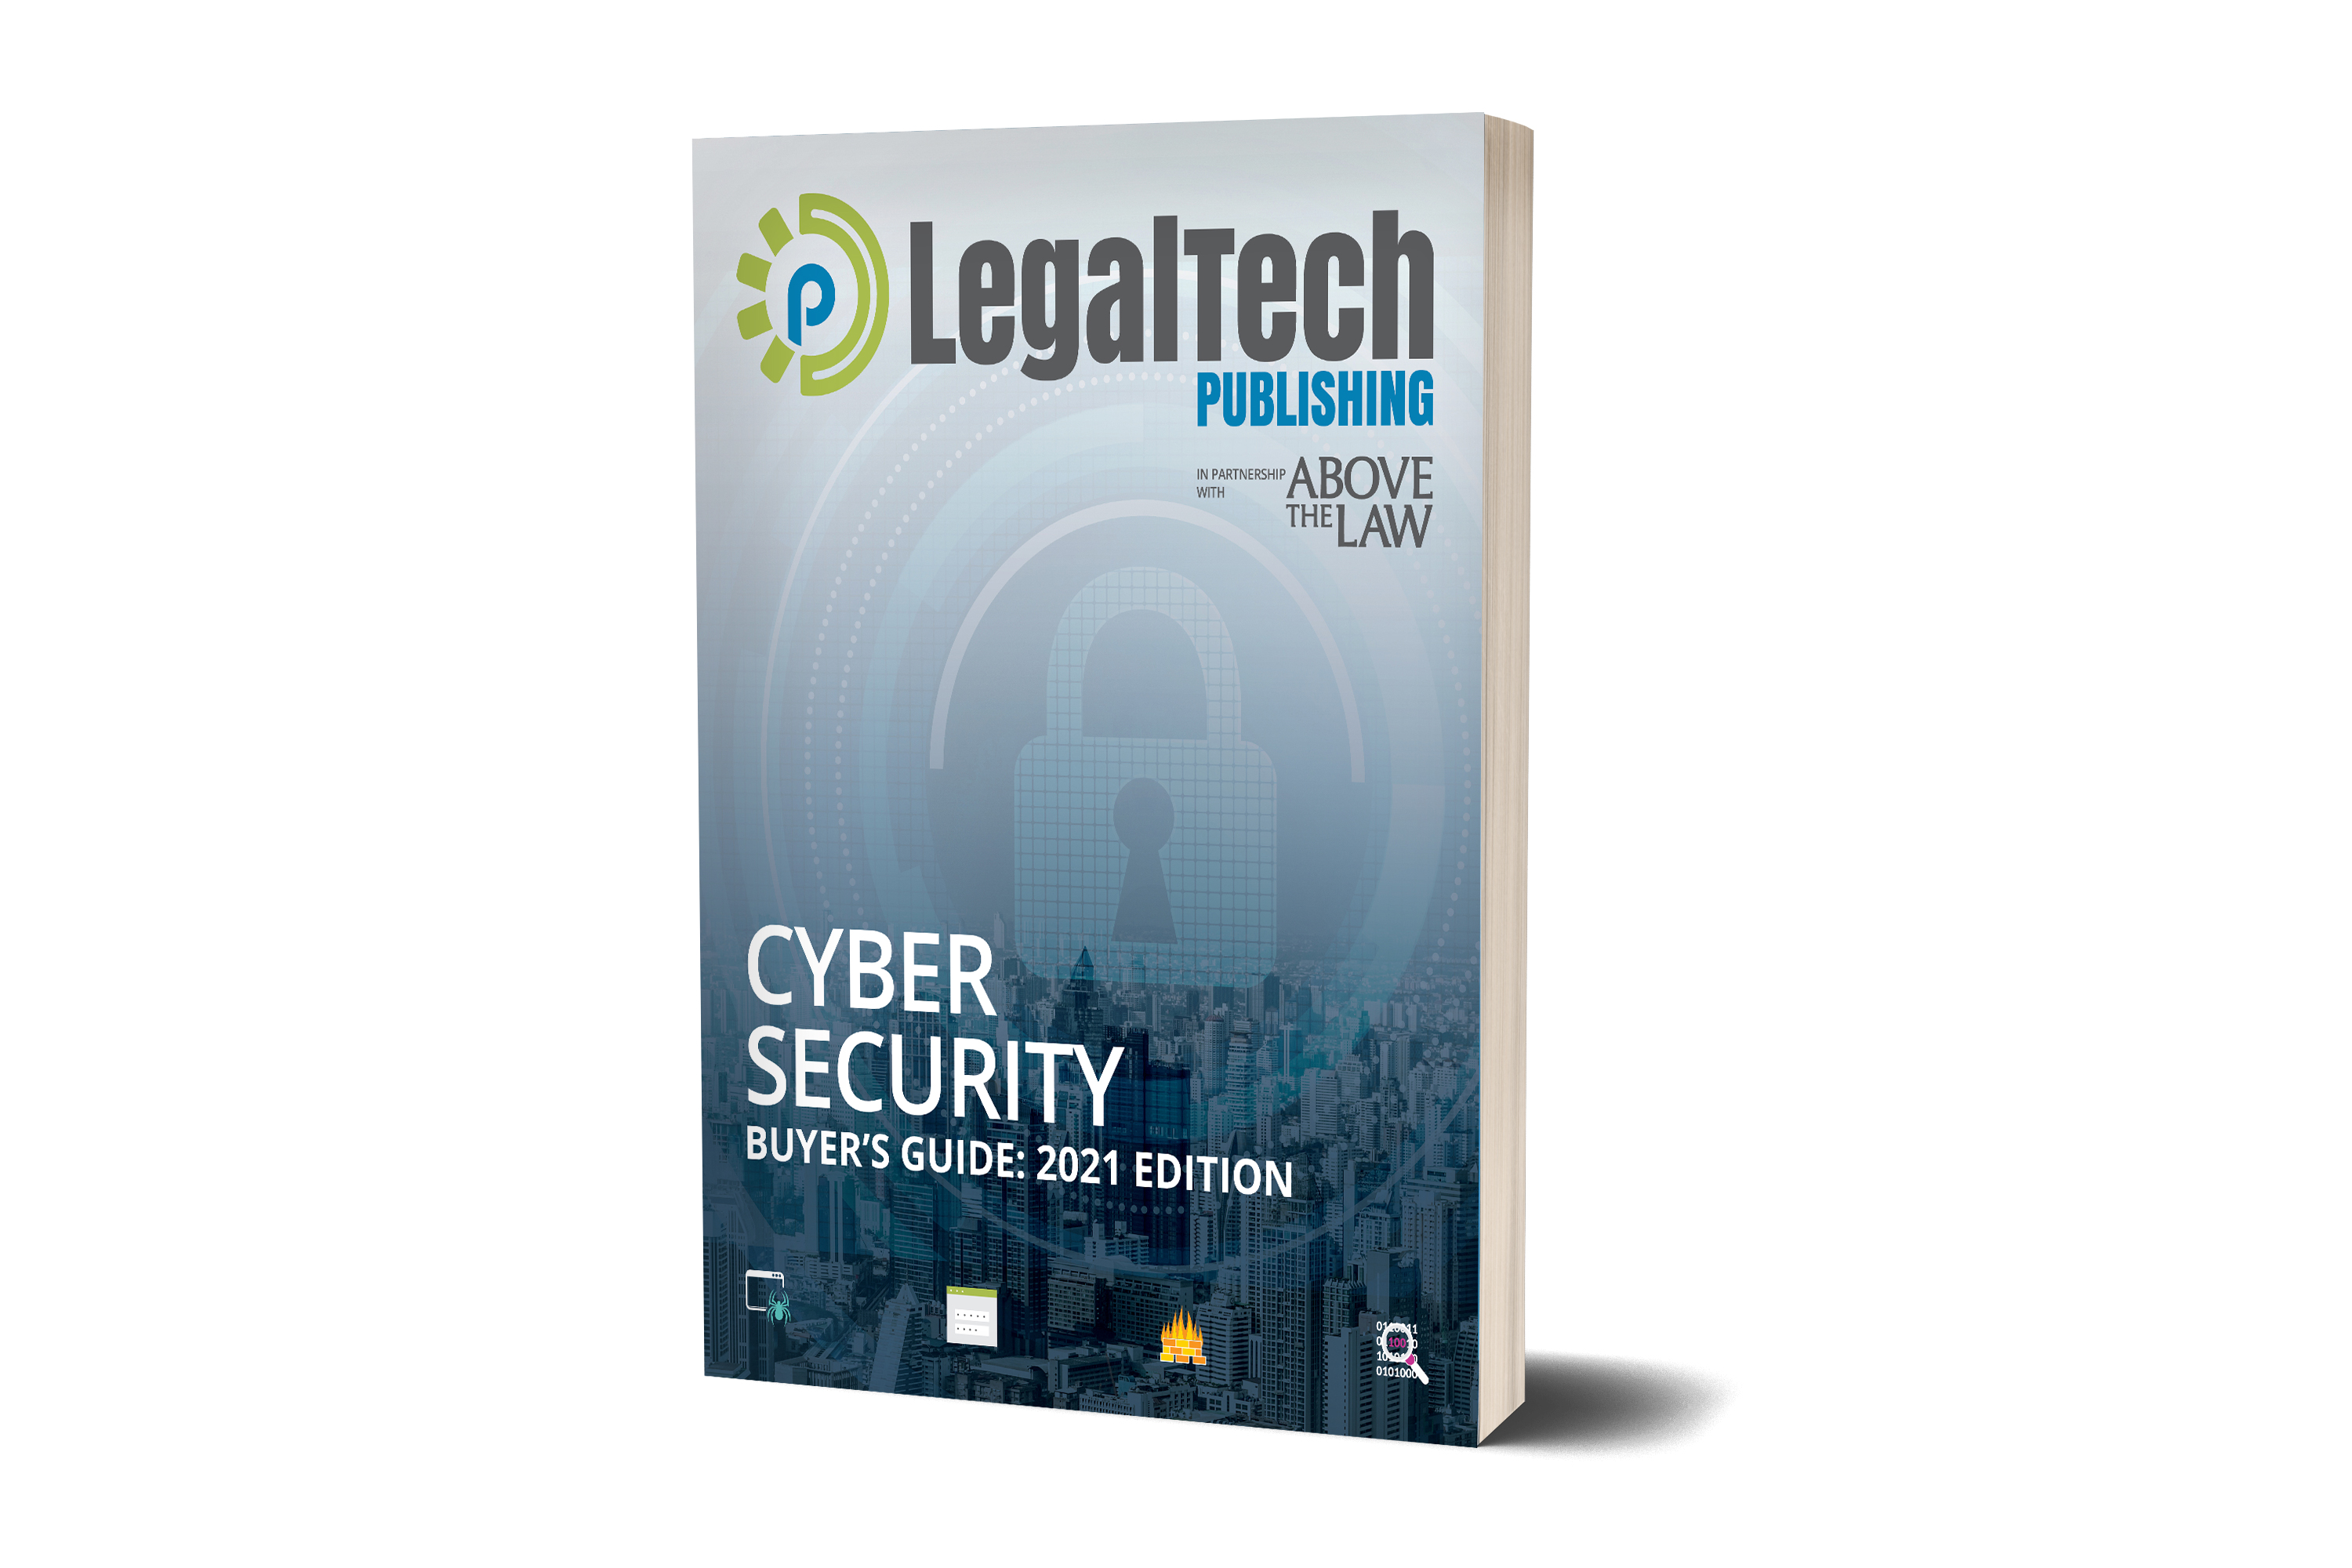 Cyber-Security-Buyers-Guide-2021-Cover-Standing